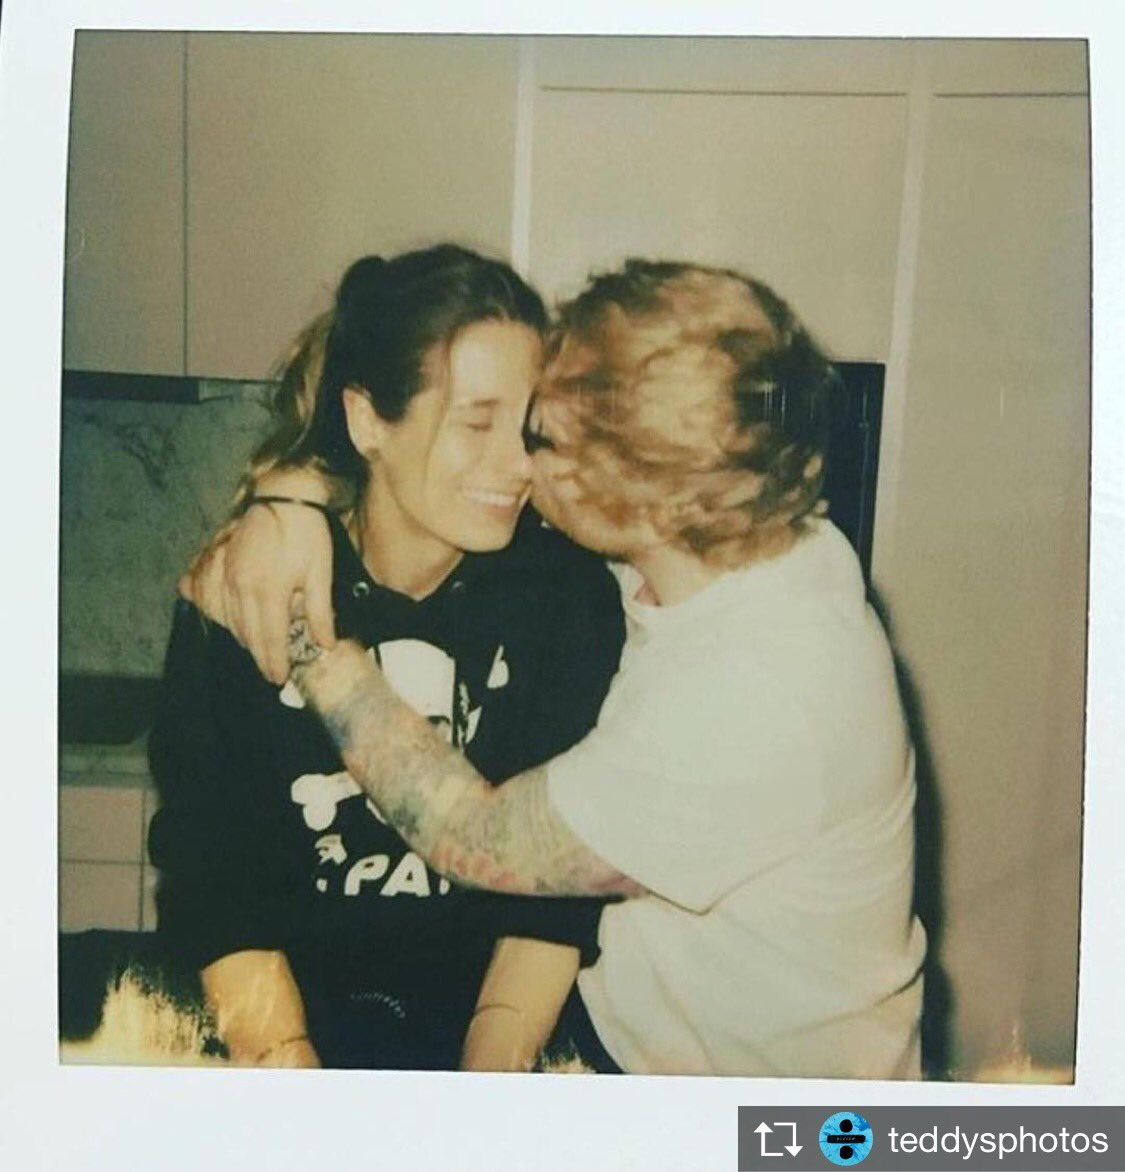 Ed Sheeran is engaged to longt cherry seaborn